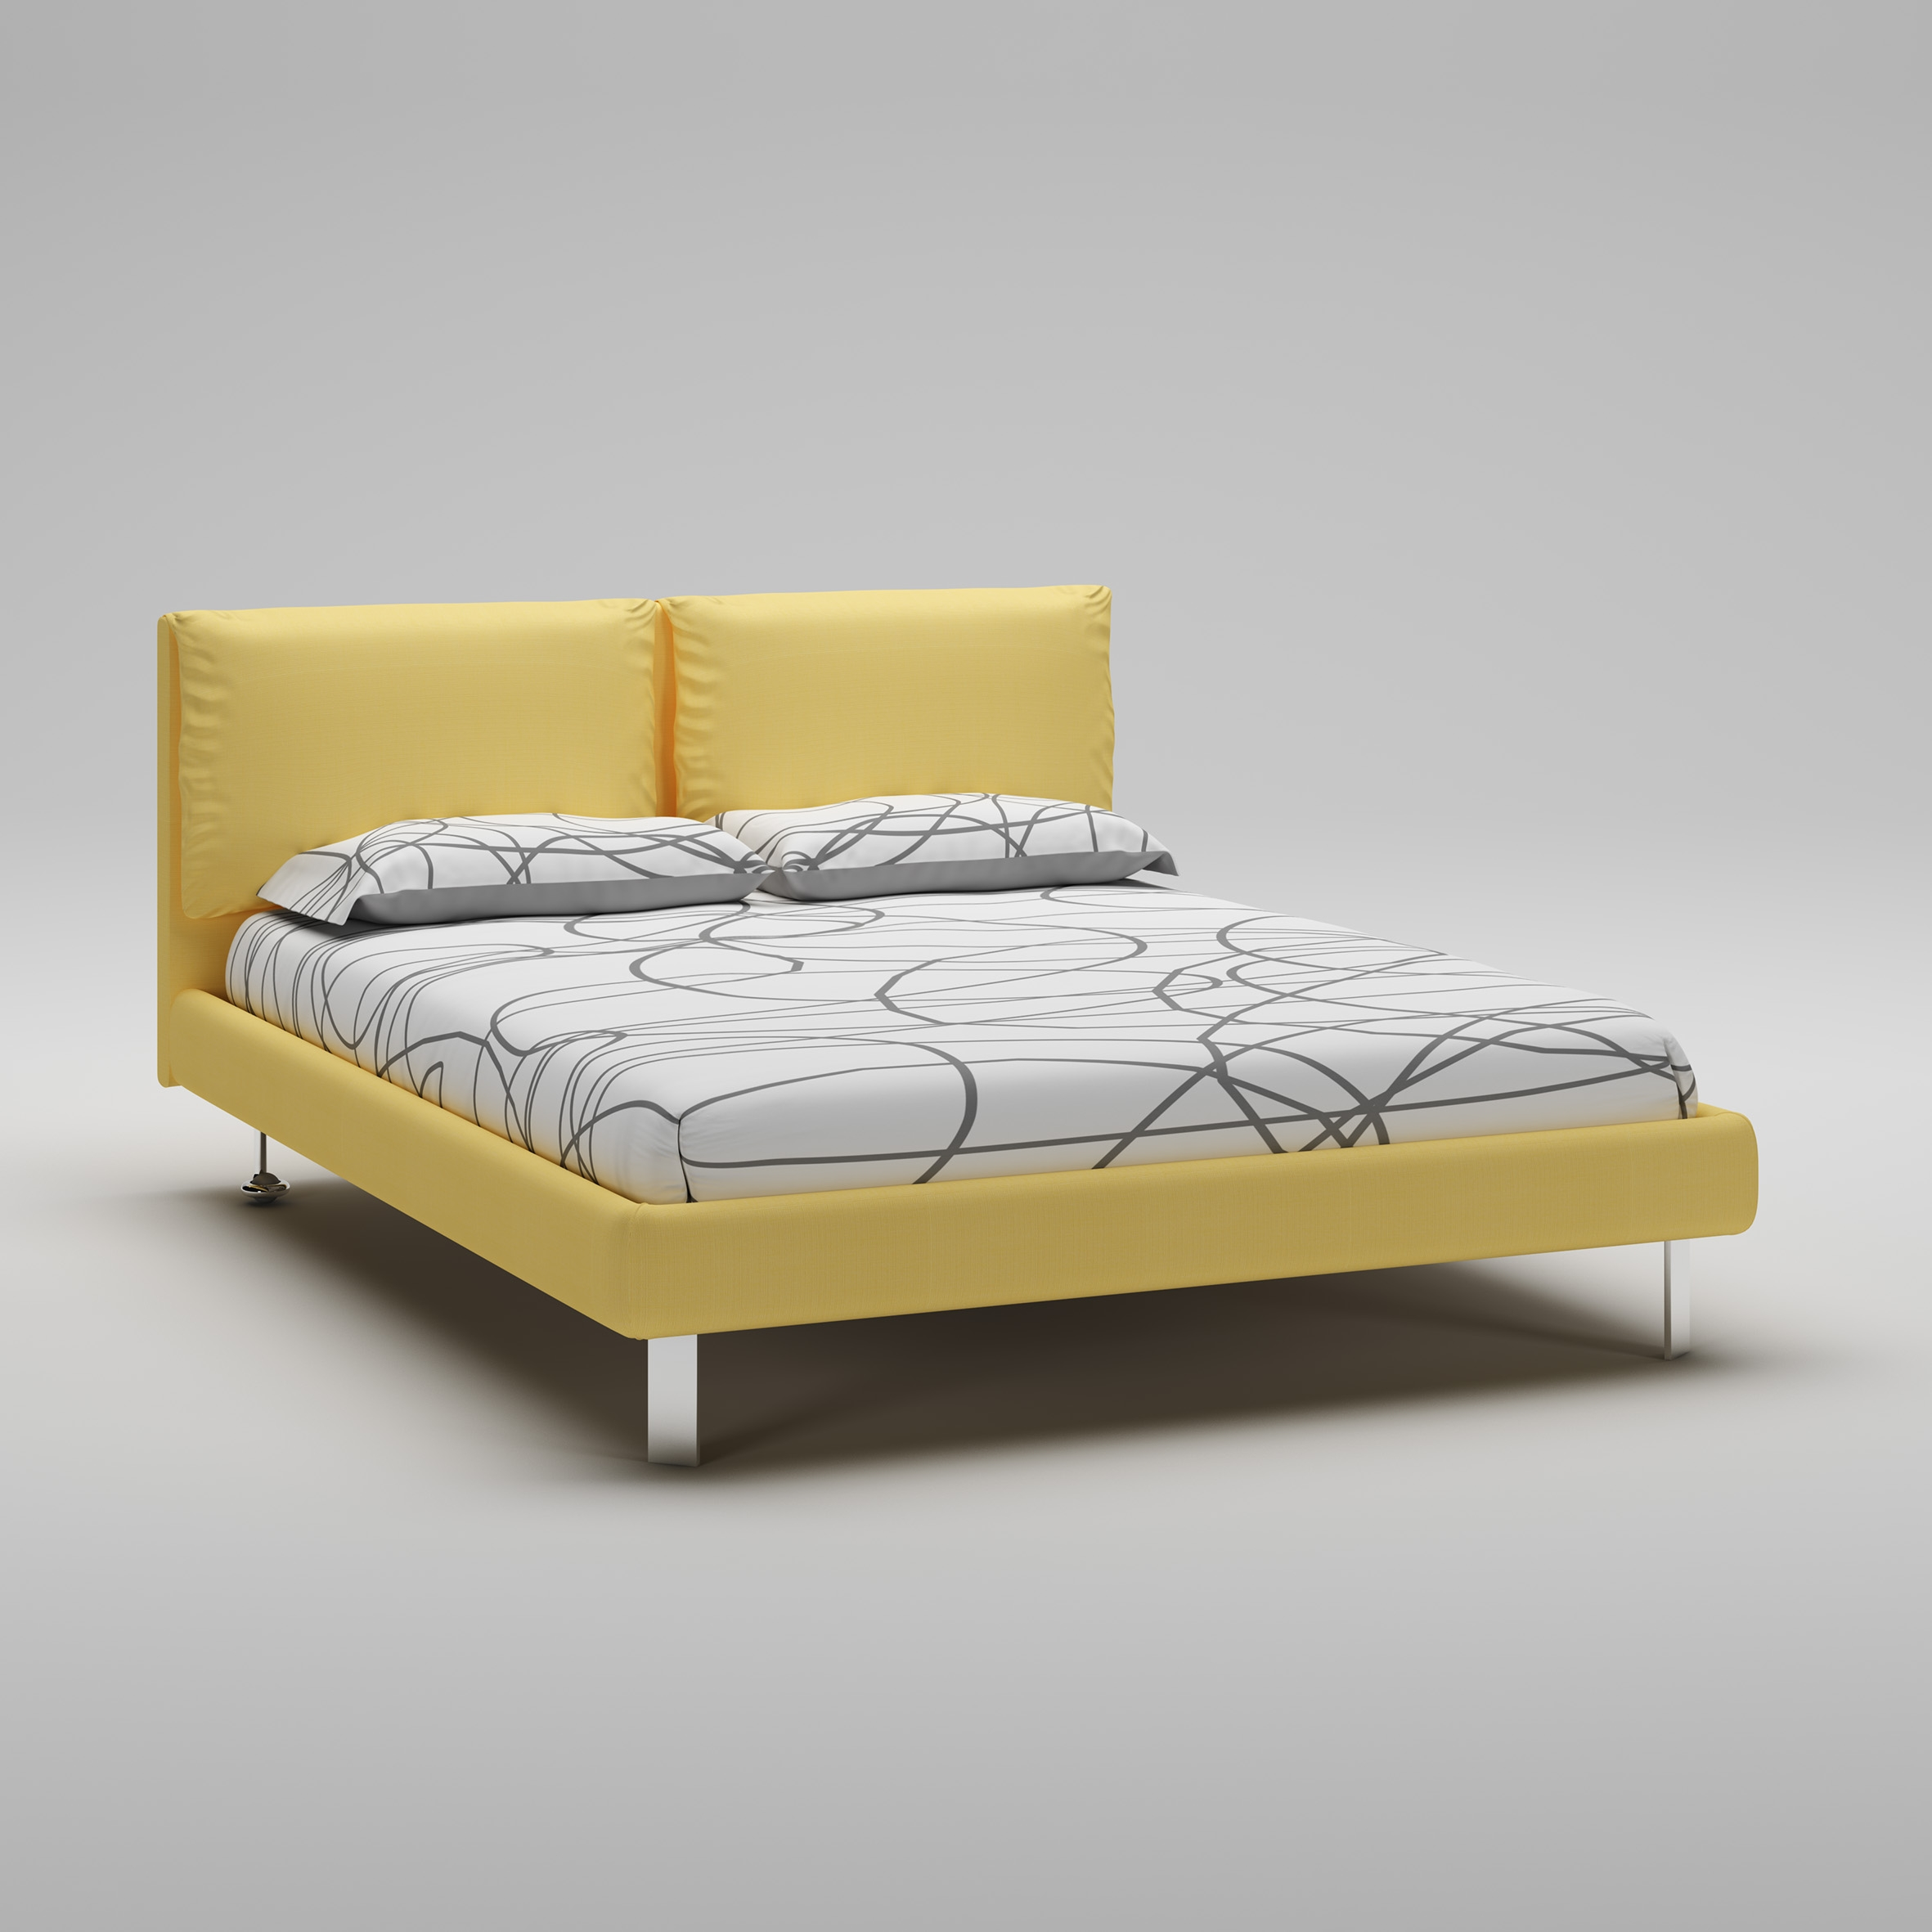 lit 160x200 avec cadre t te de lit jaune moretti compact so nuit. Black Bedroom Furniture Sets. Home Design Ideas